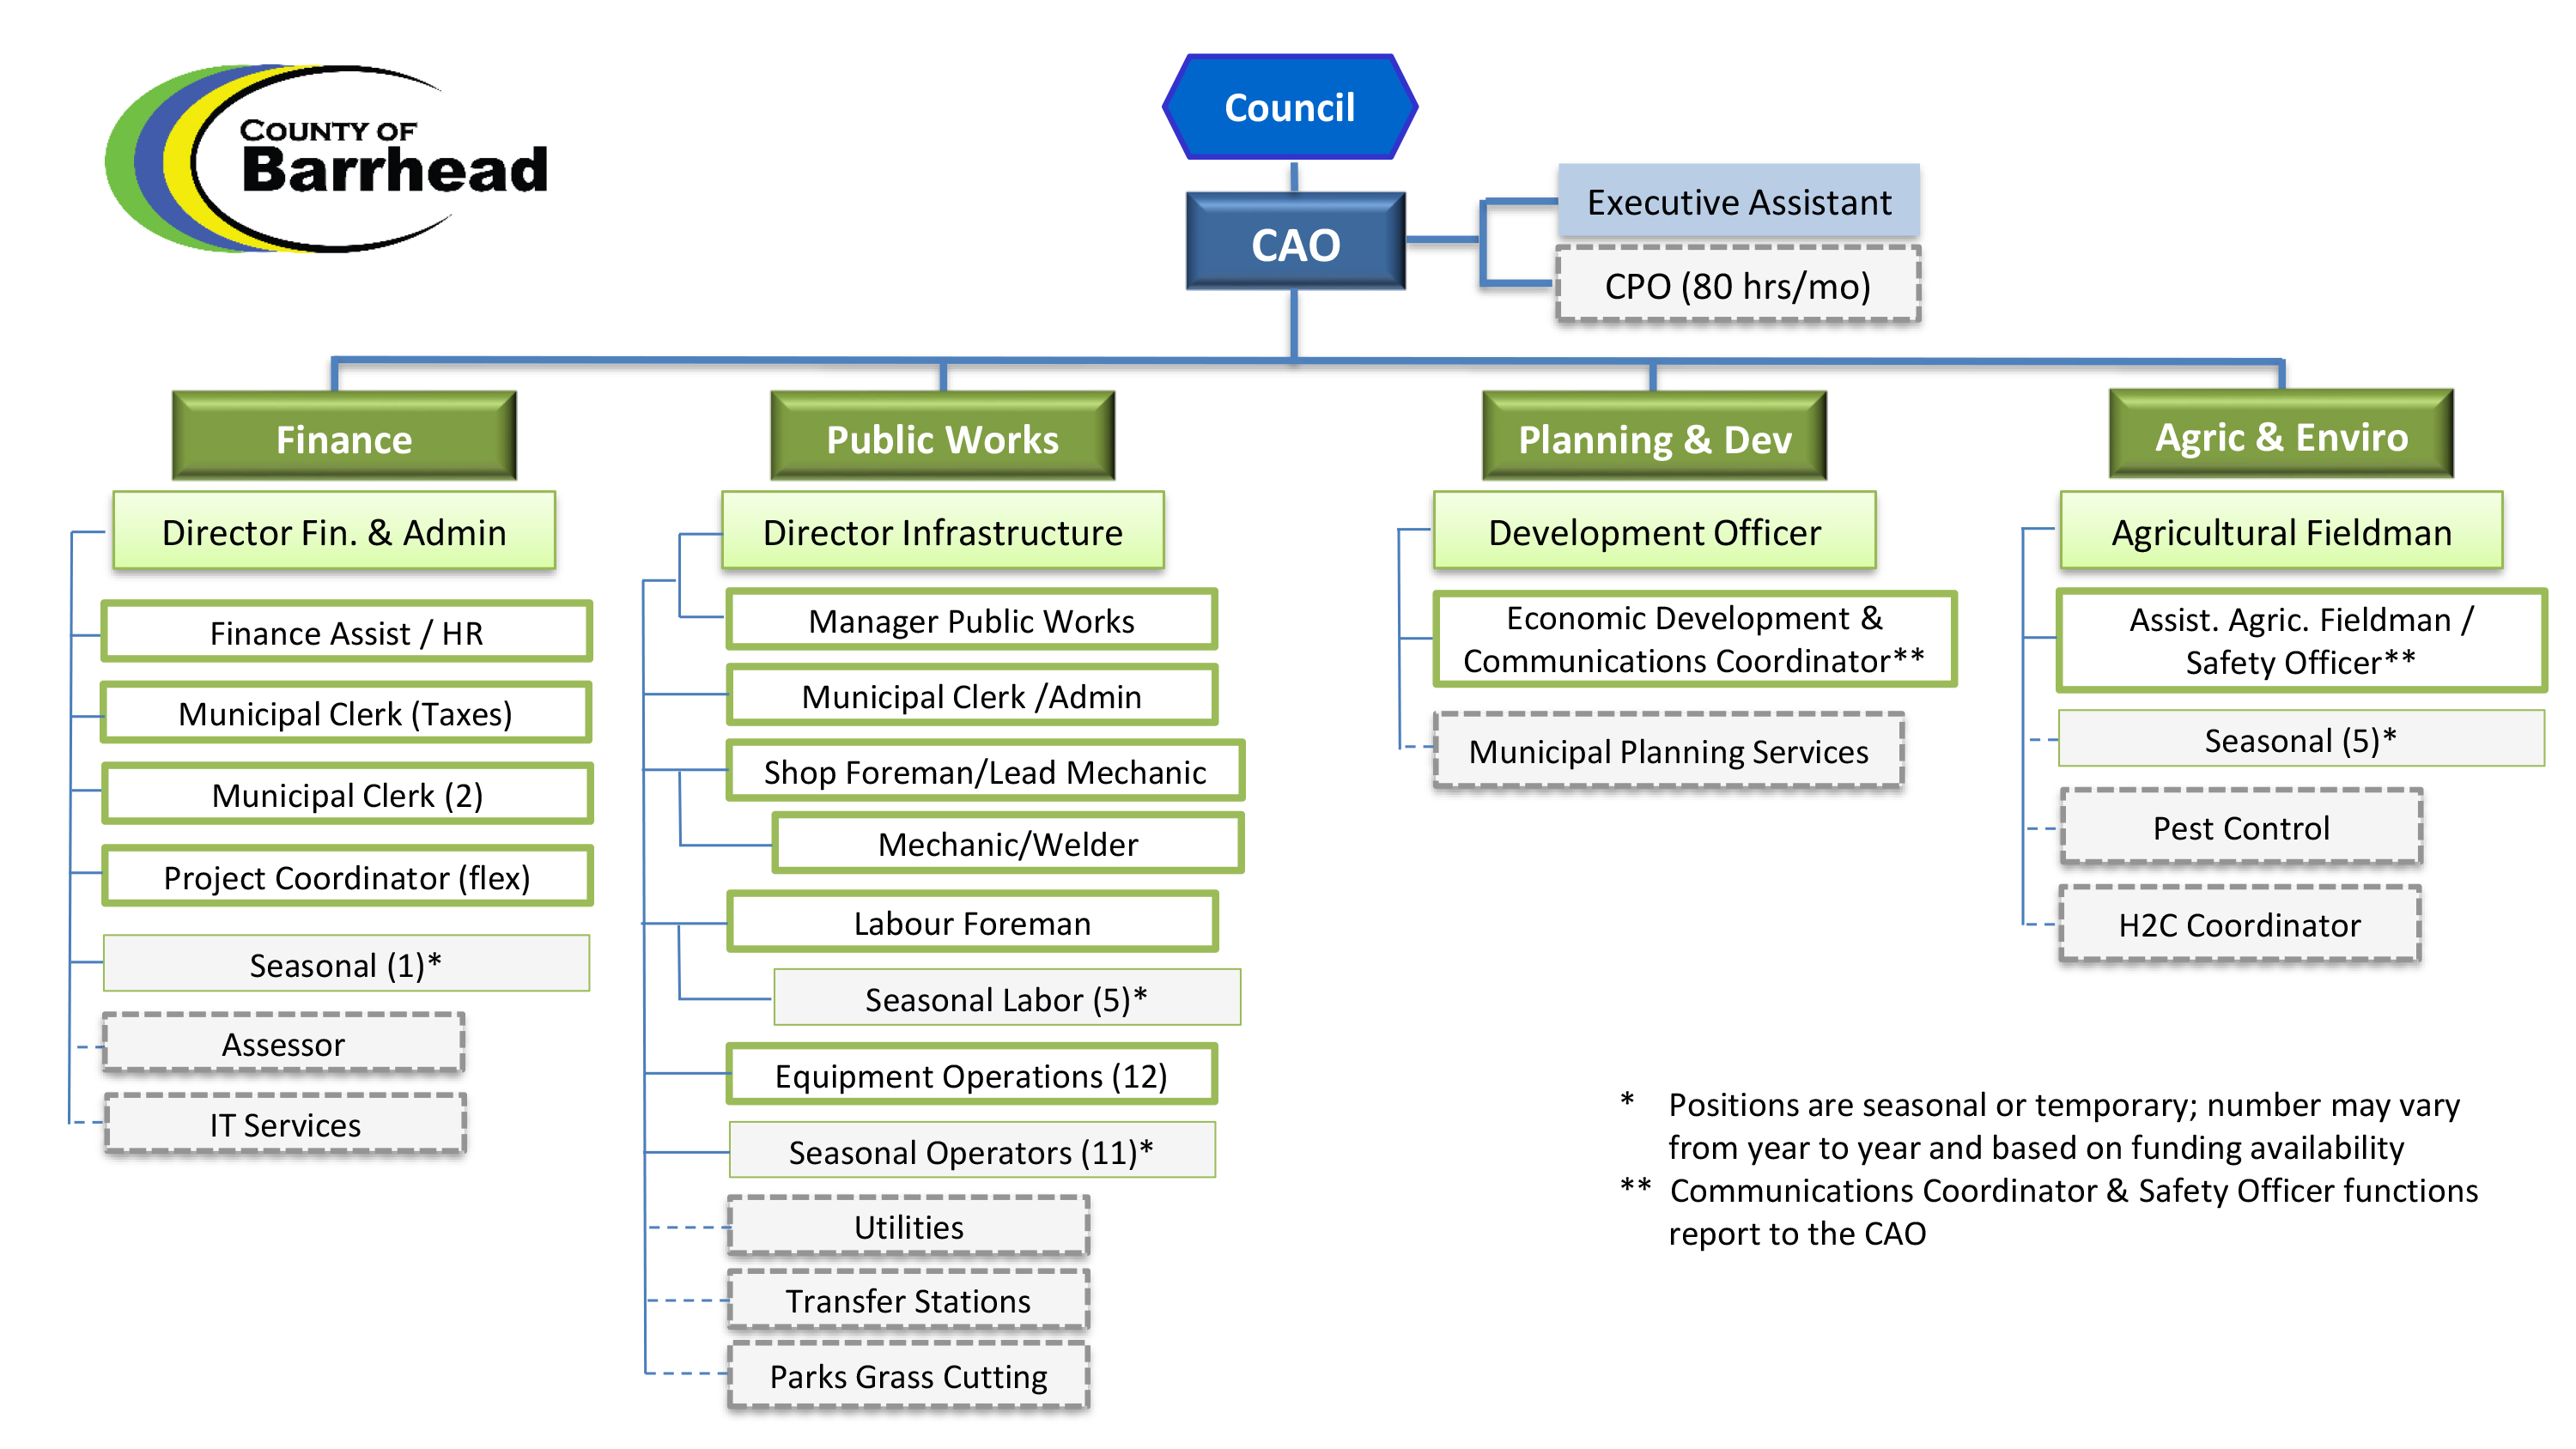 County of Barrhead Org Chart